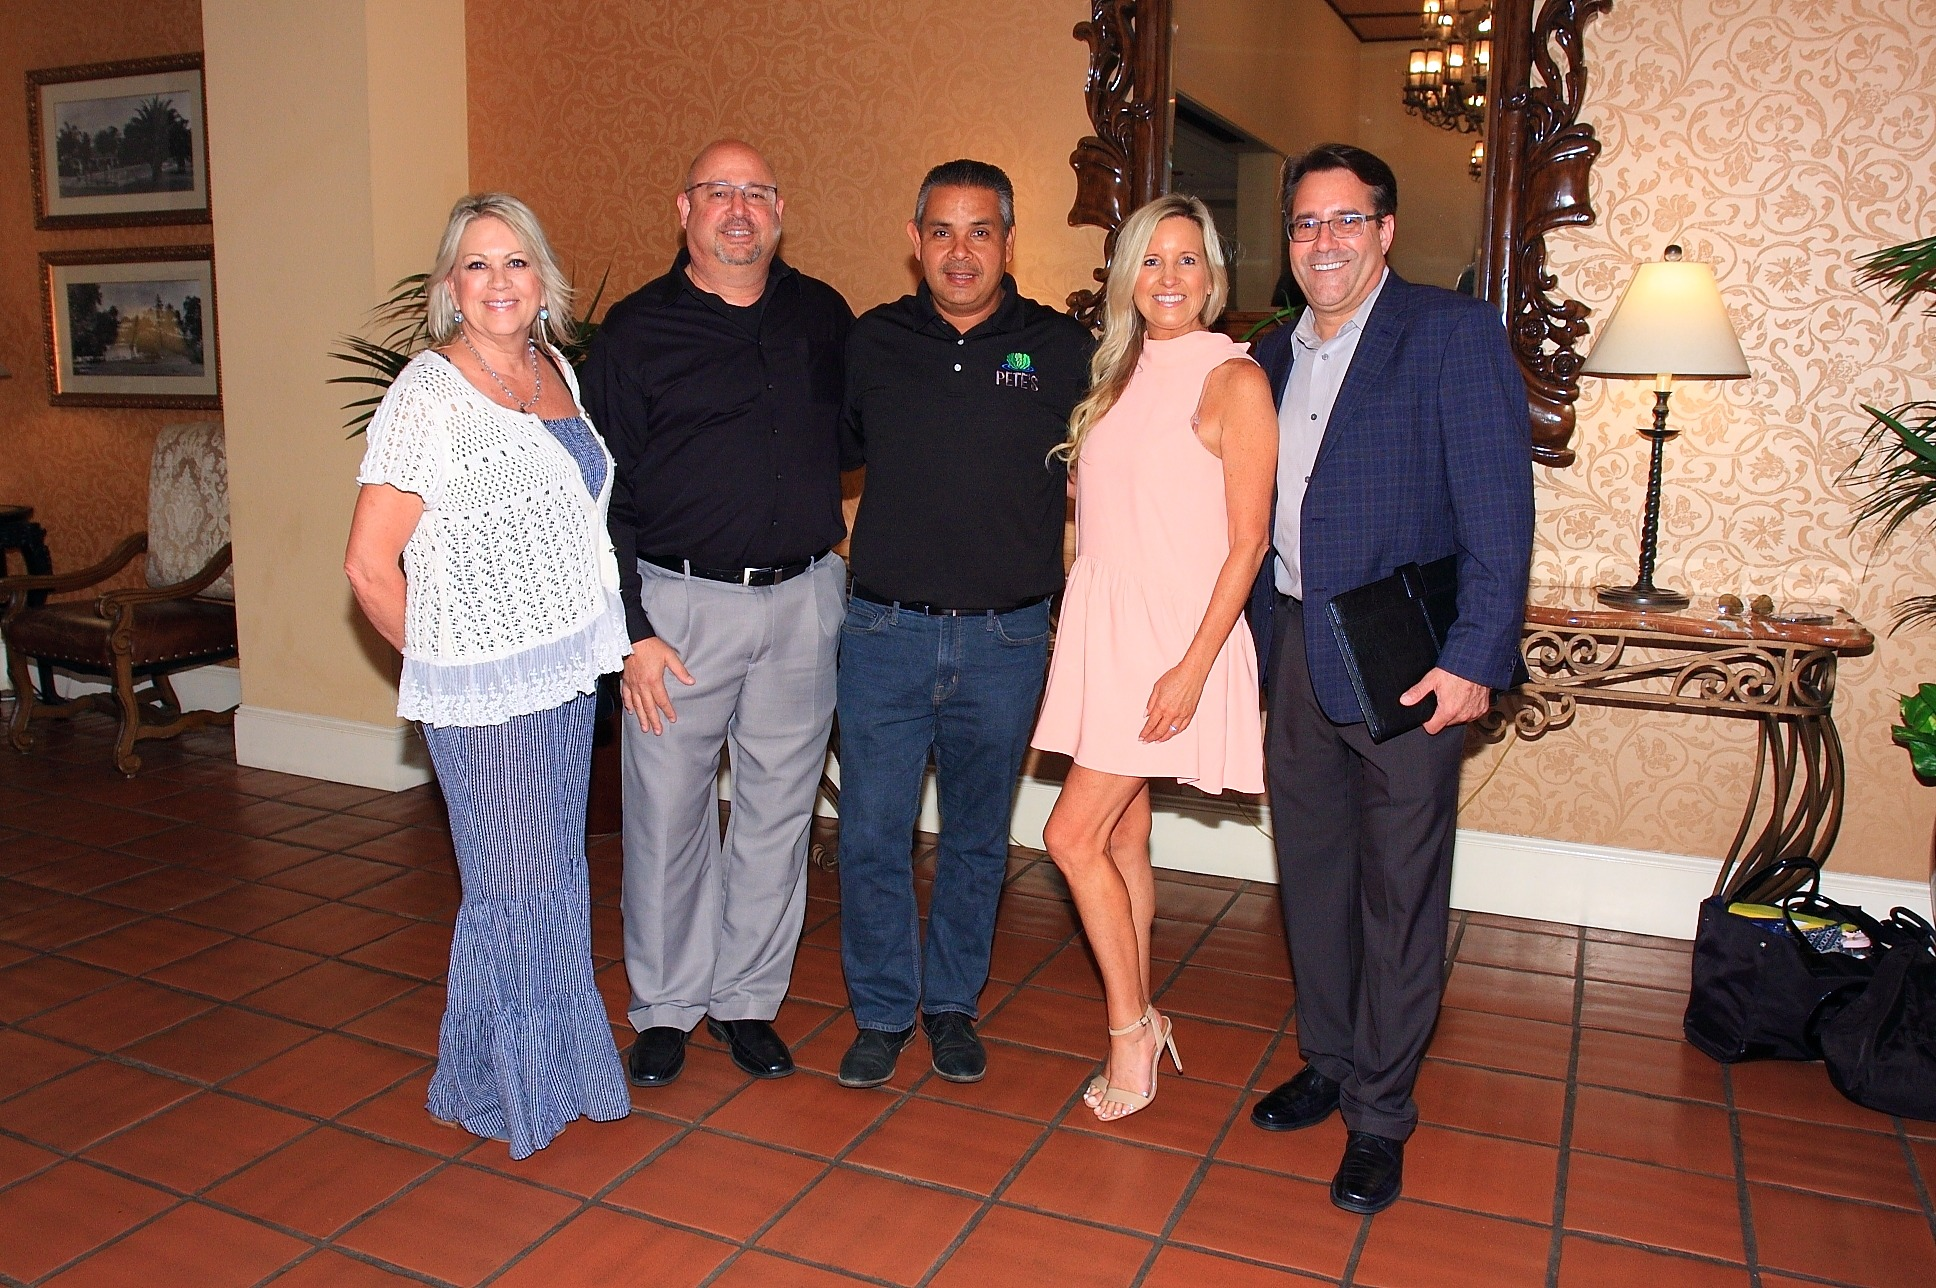 Laurie Fitch and Gary Ruggiero of Raley's Supermarkets, Baltazar Garcia of Pete's, Kristyn Lawson of Krissy Farms, and Kip Martin of Raley's Supermarkets.